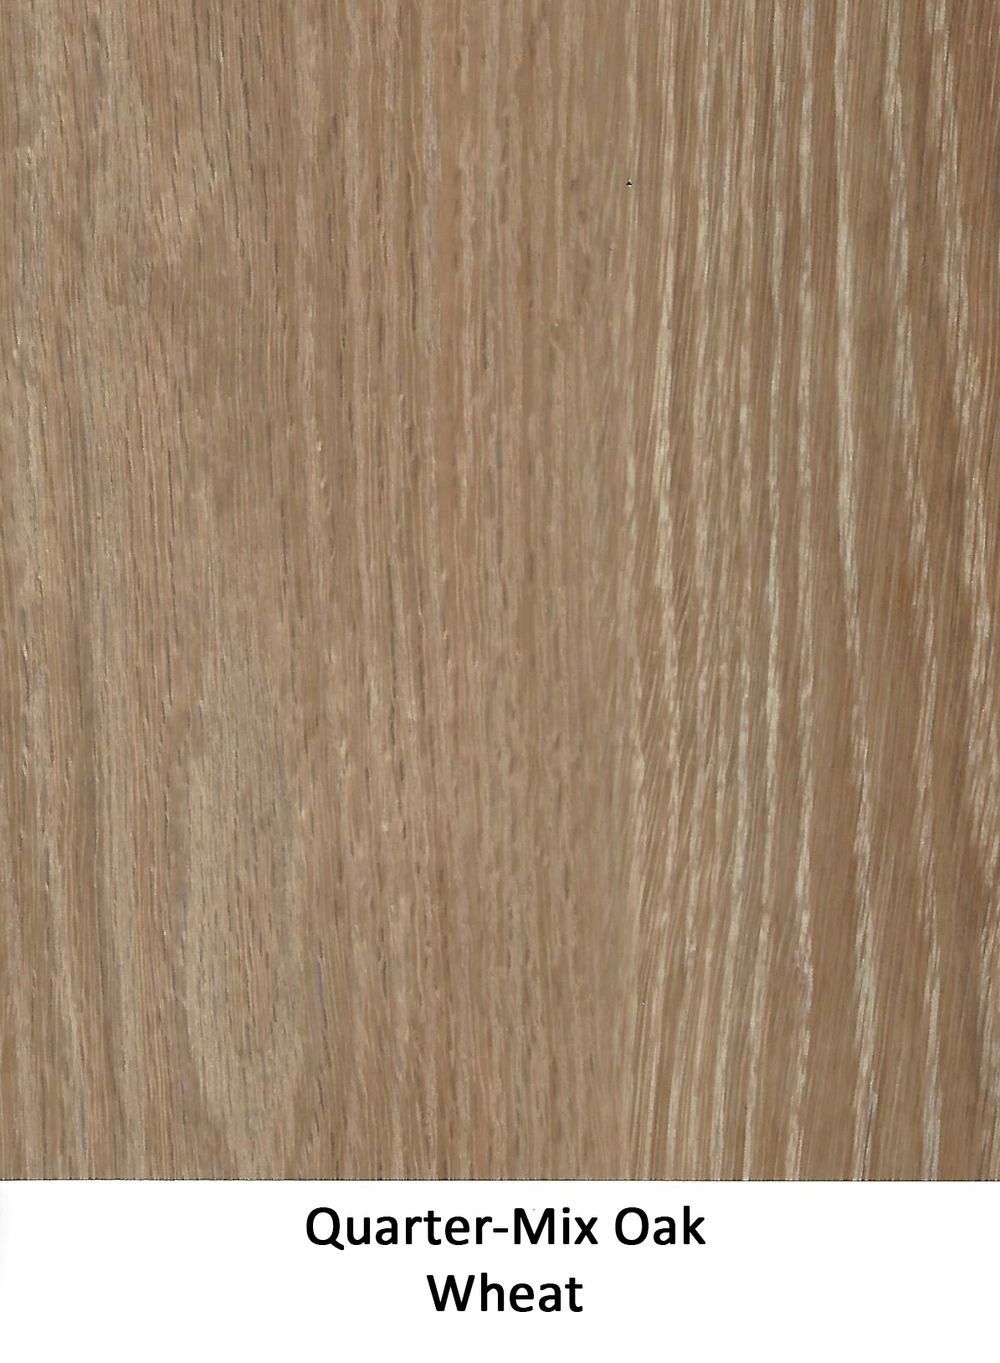 Quarter-Mix-Oak---Wheat.jpg